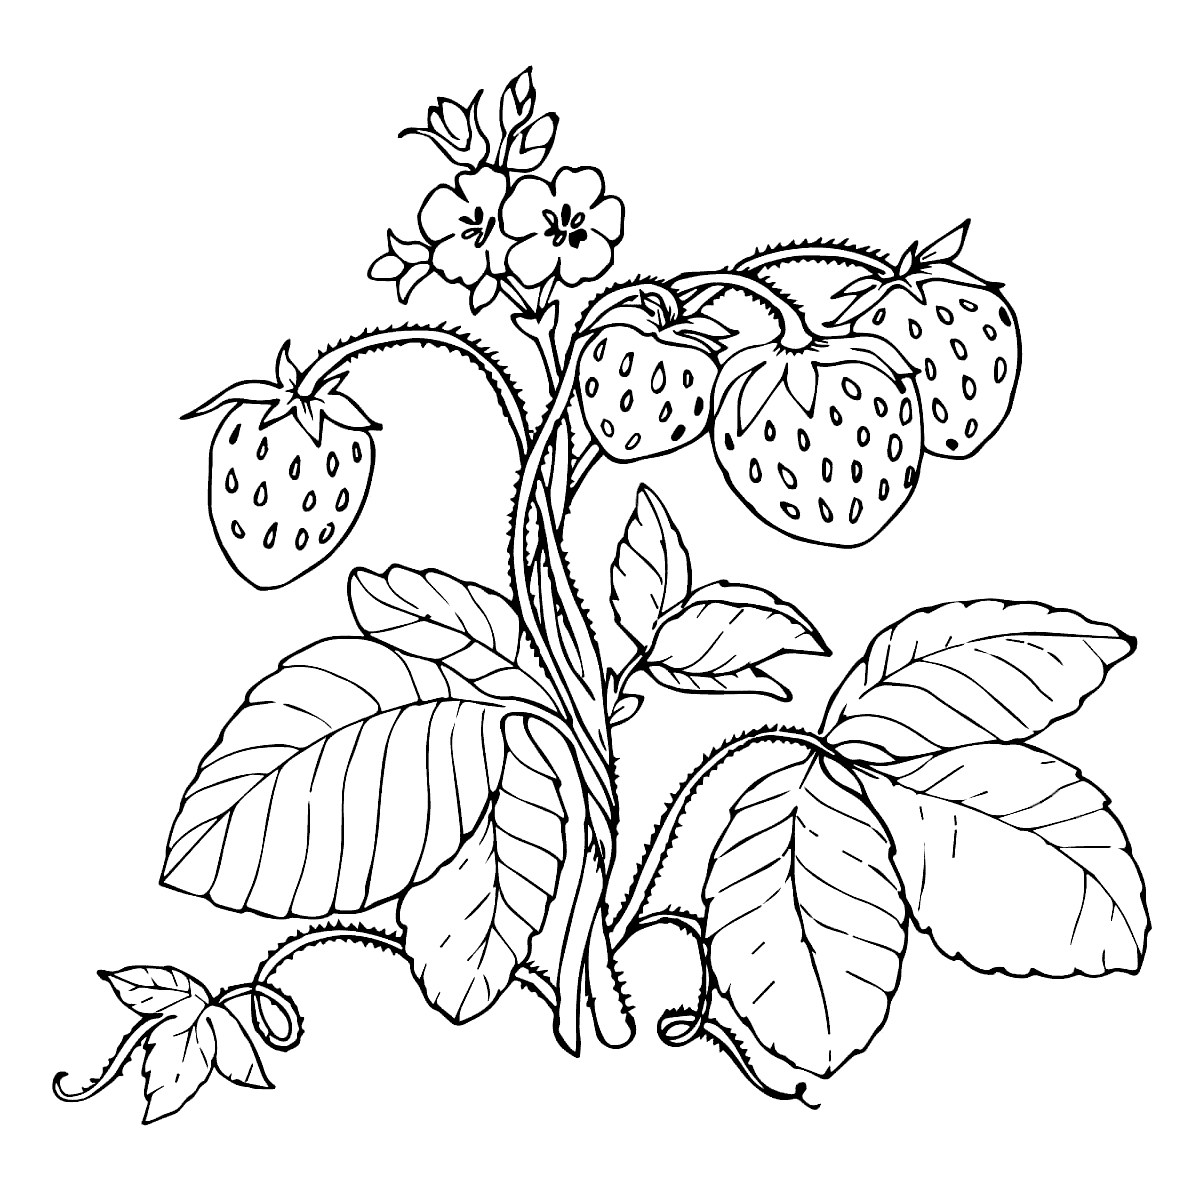 strawberry colouring page strawberry coloring pages getcoloringpagescom strawberry colouring page